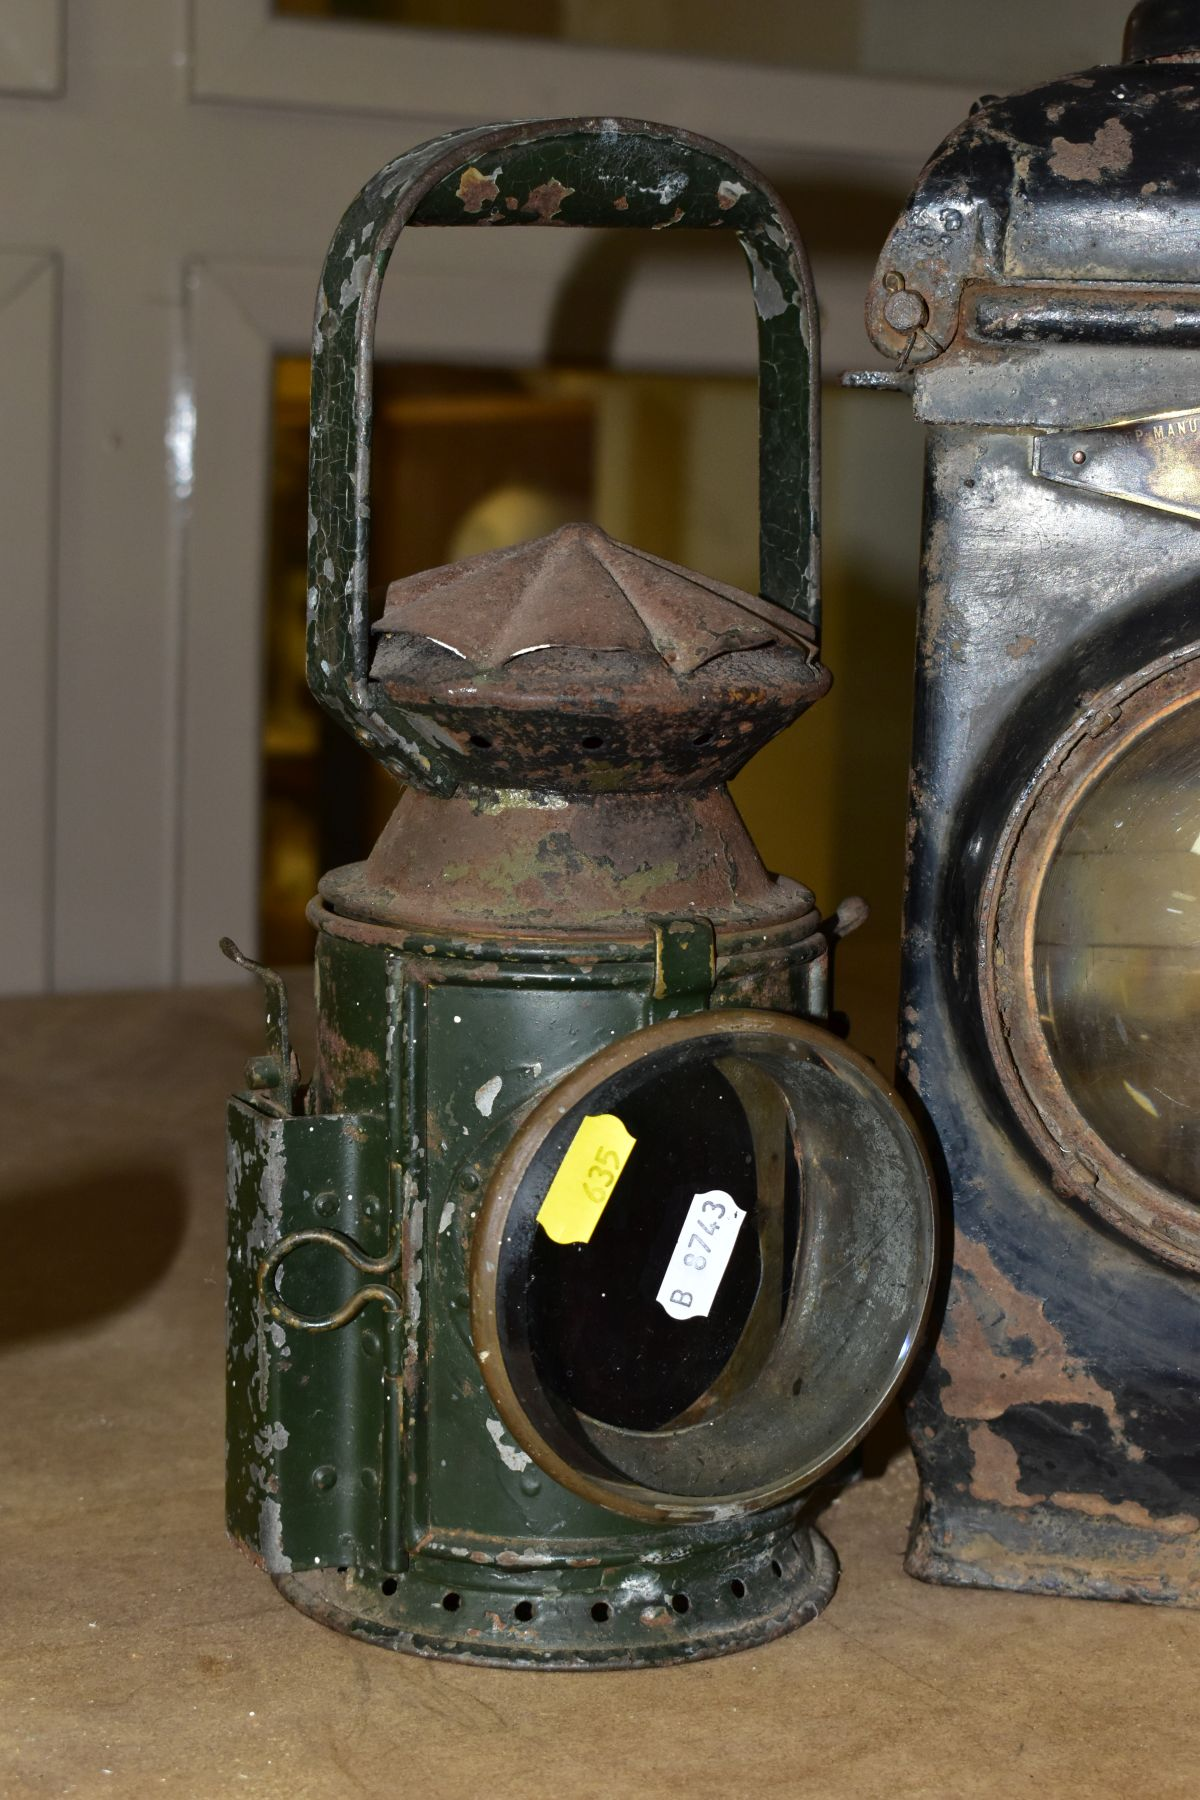 AN ADLAKE NO. 55 RAILWAY LAMP, black painted body with clear bulls eye lens, complete with lift - Image 2 of 8